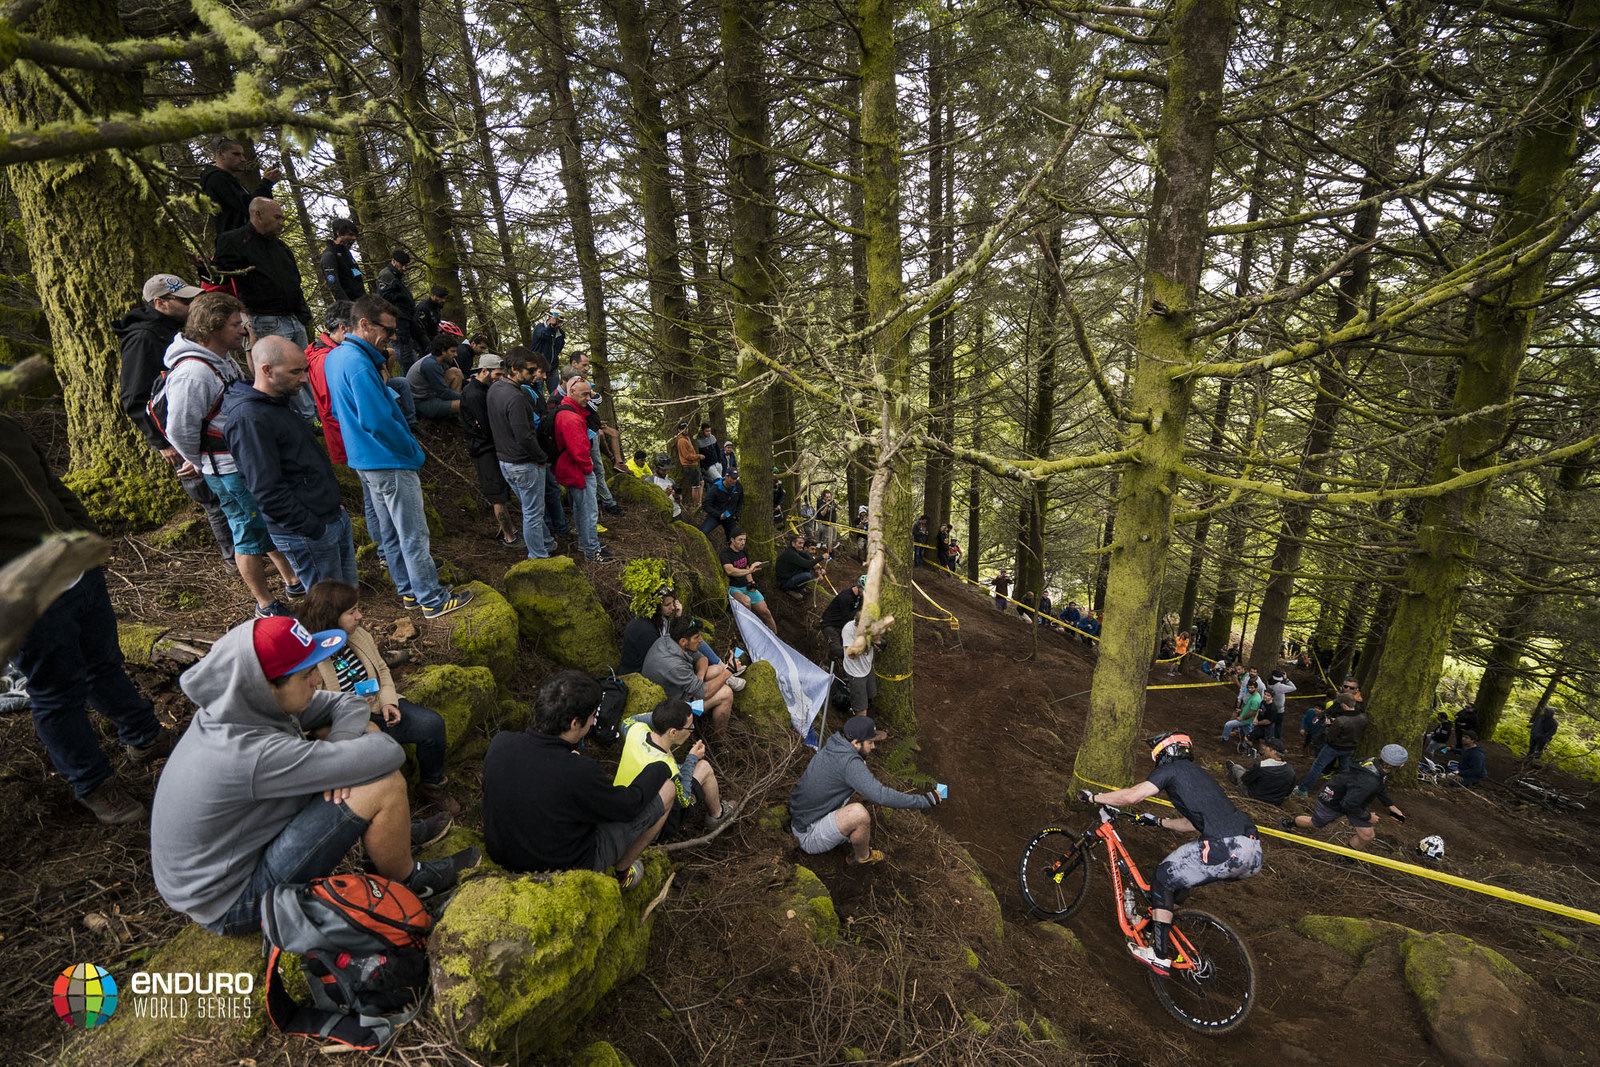 2017 Enduro World Series Round No. 3: Madeira, Portugal